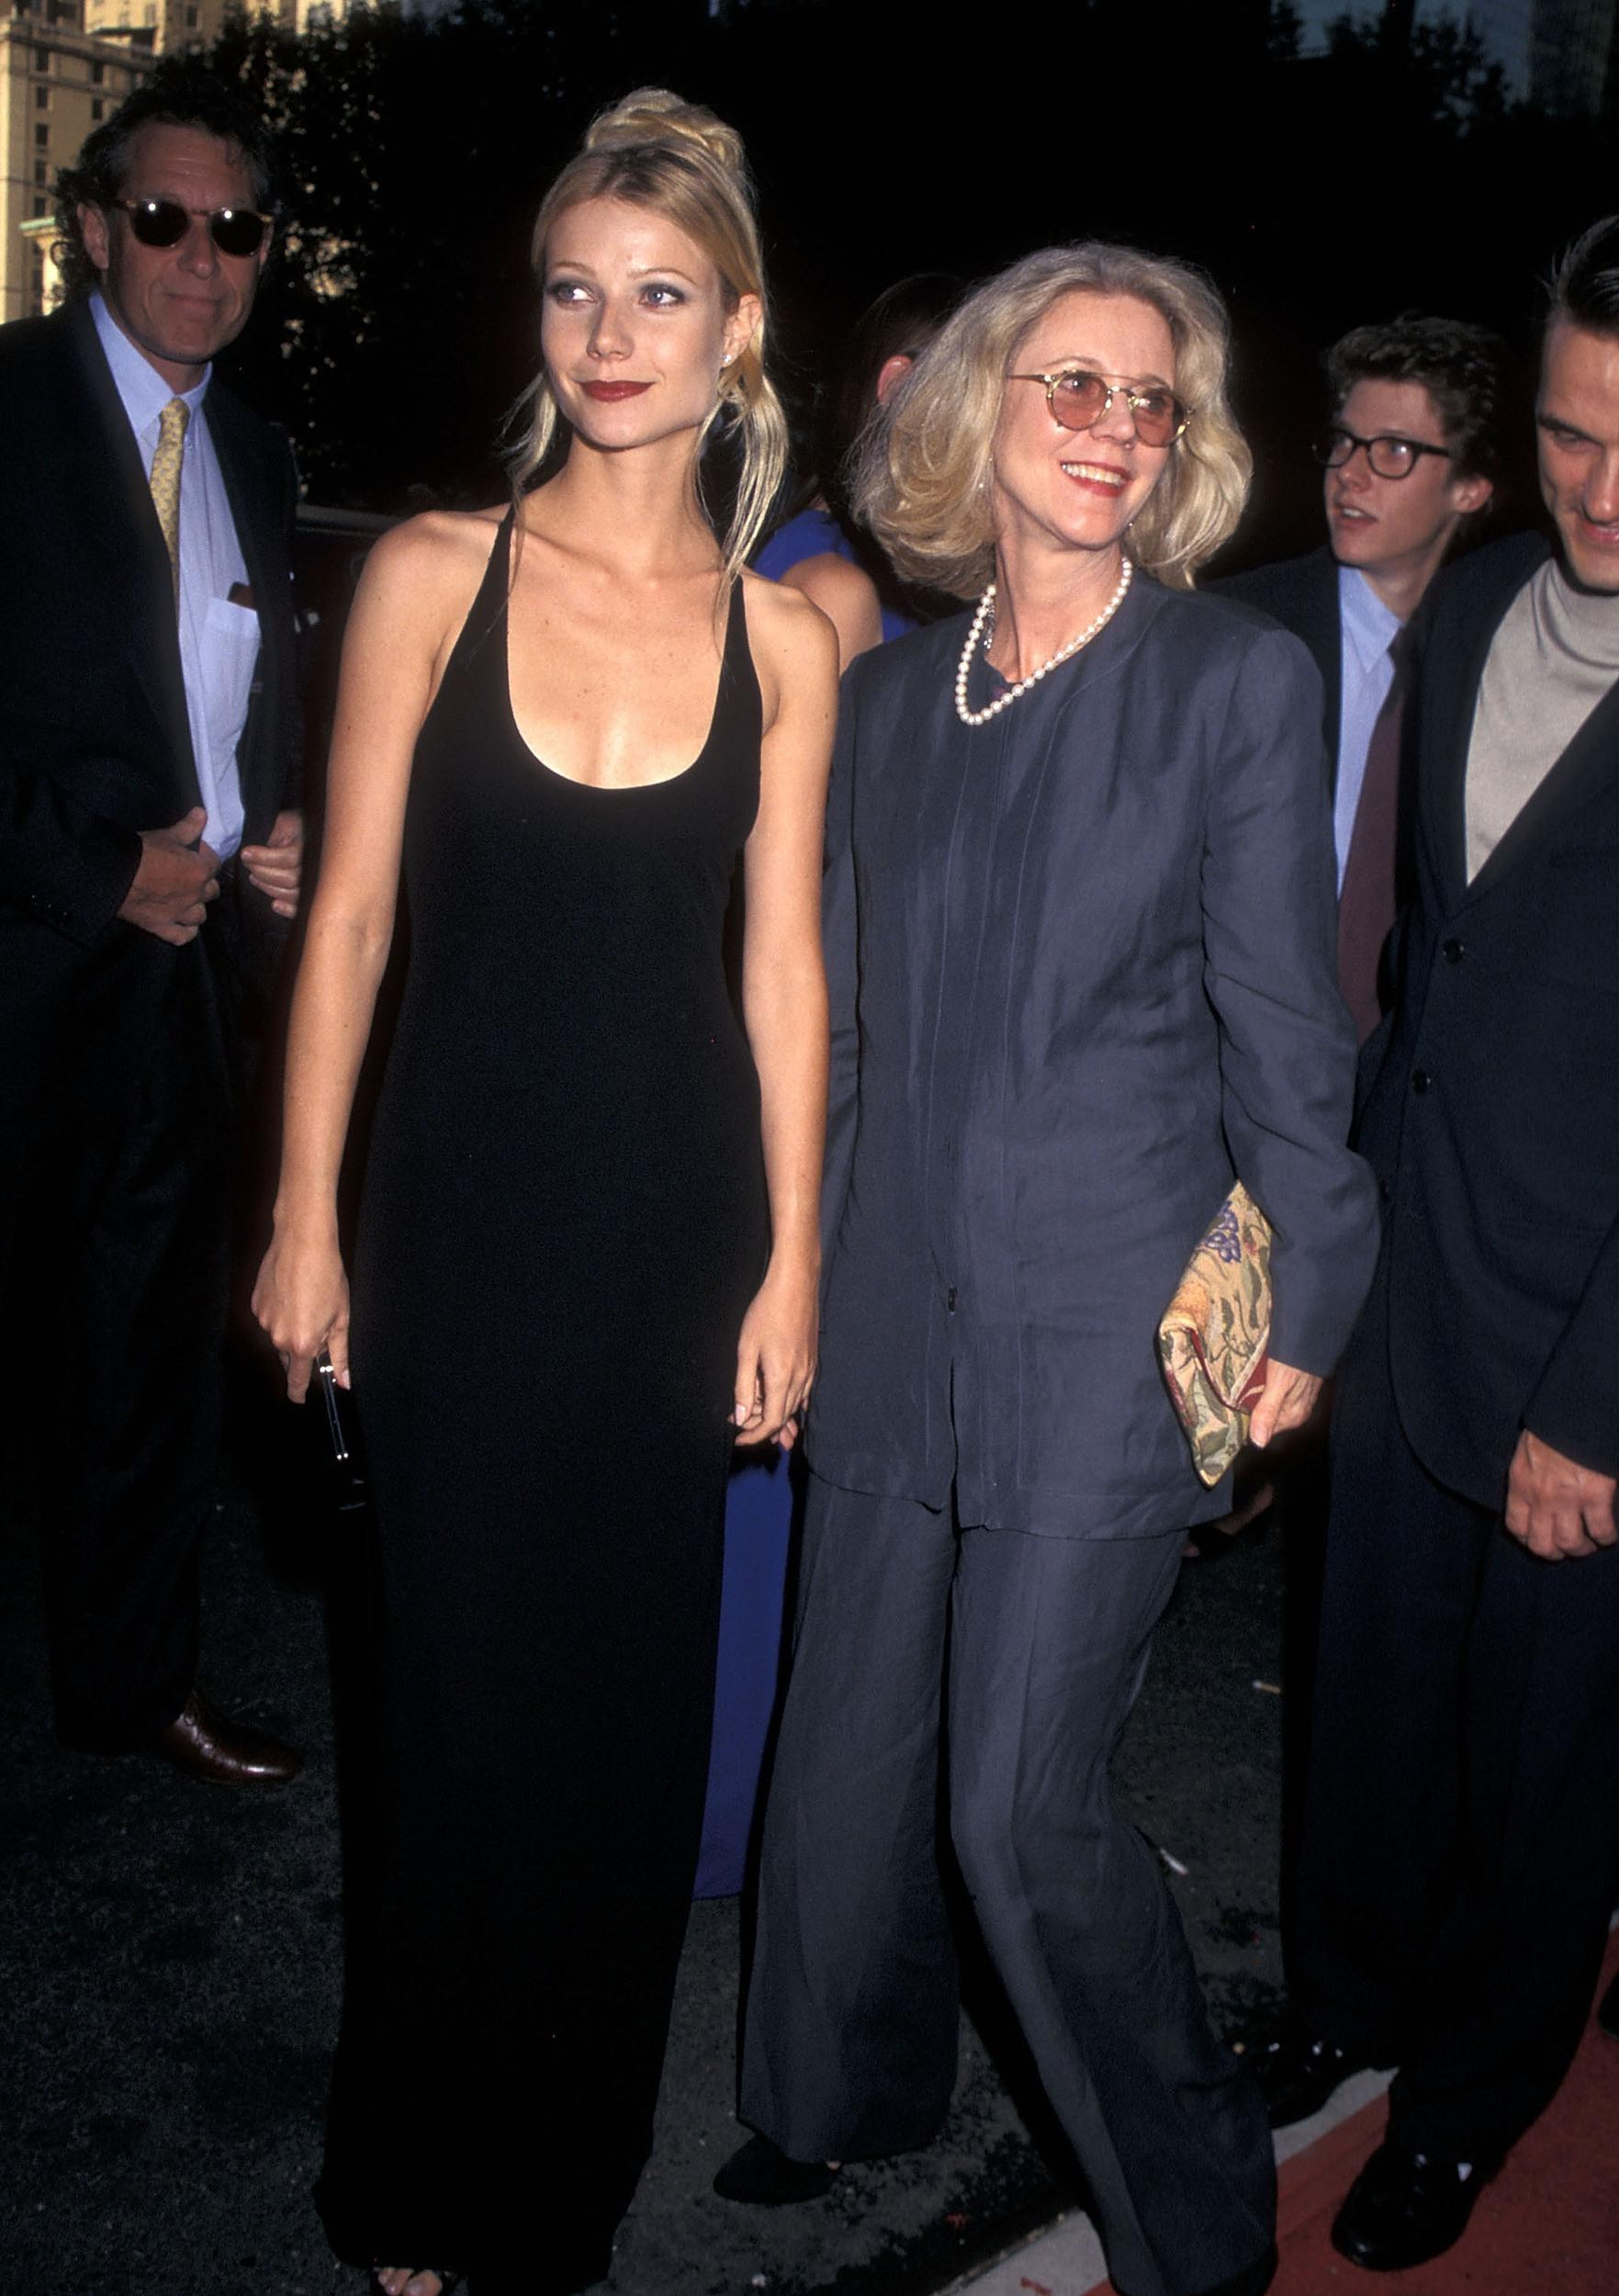 Actress Gwyneth Paltrow and actress Blythe Danner attend the 'Emma' New York City Premiere on July 22, 1996 at the Paris Theatre in New York City. (Photo by Ron Galella, Ltd./WireImage)